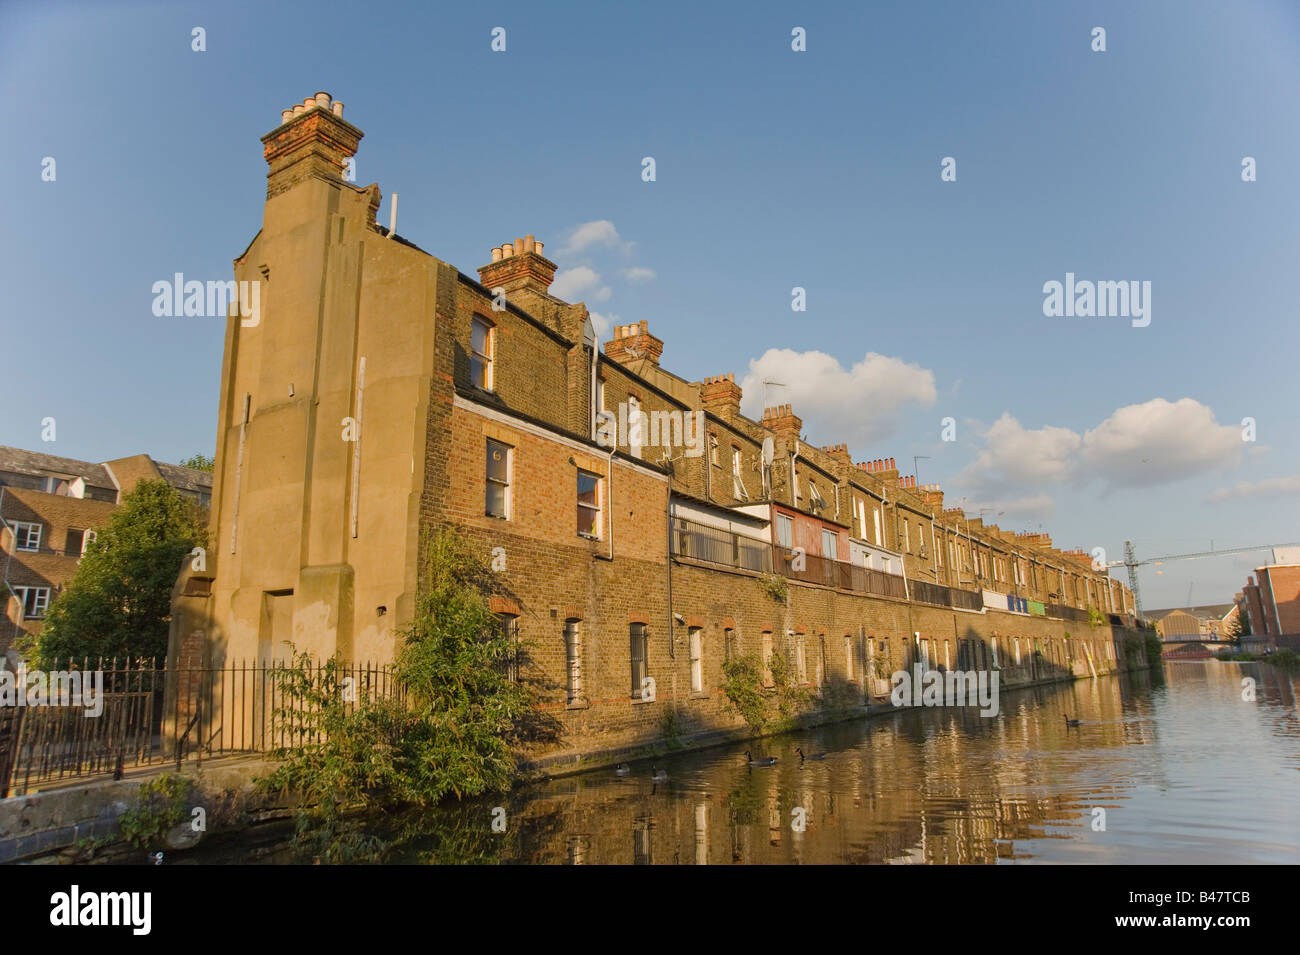 A row of terraced houses facing the Grand Union canal West London - Stock Image